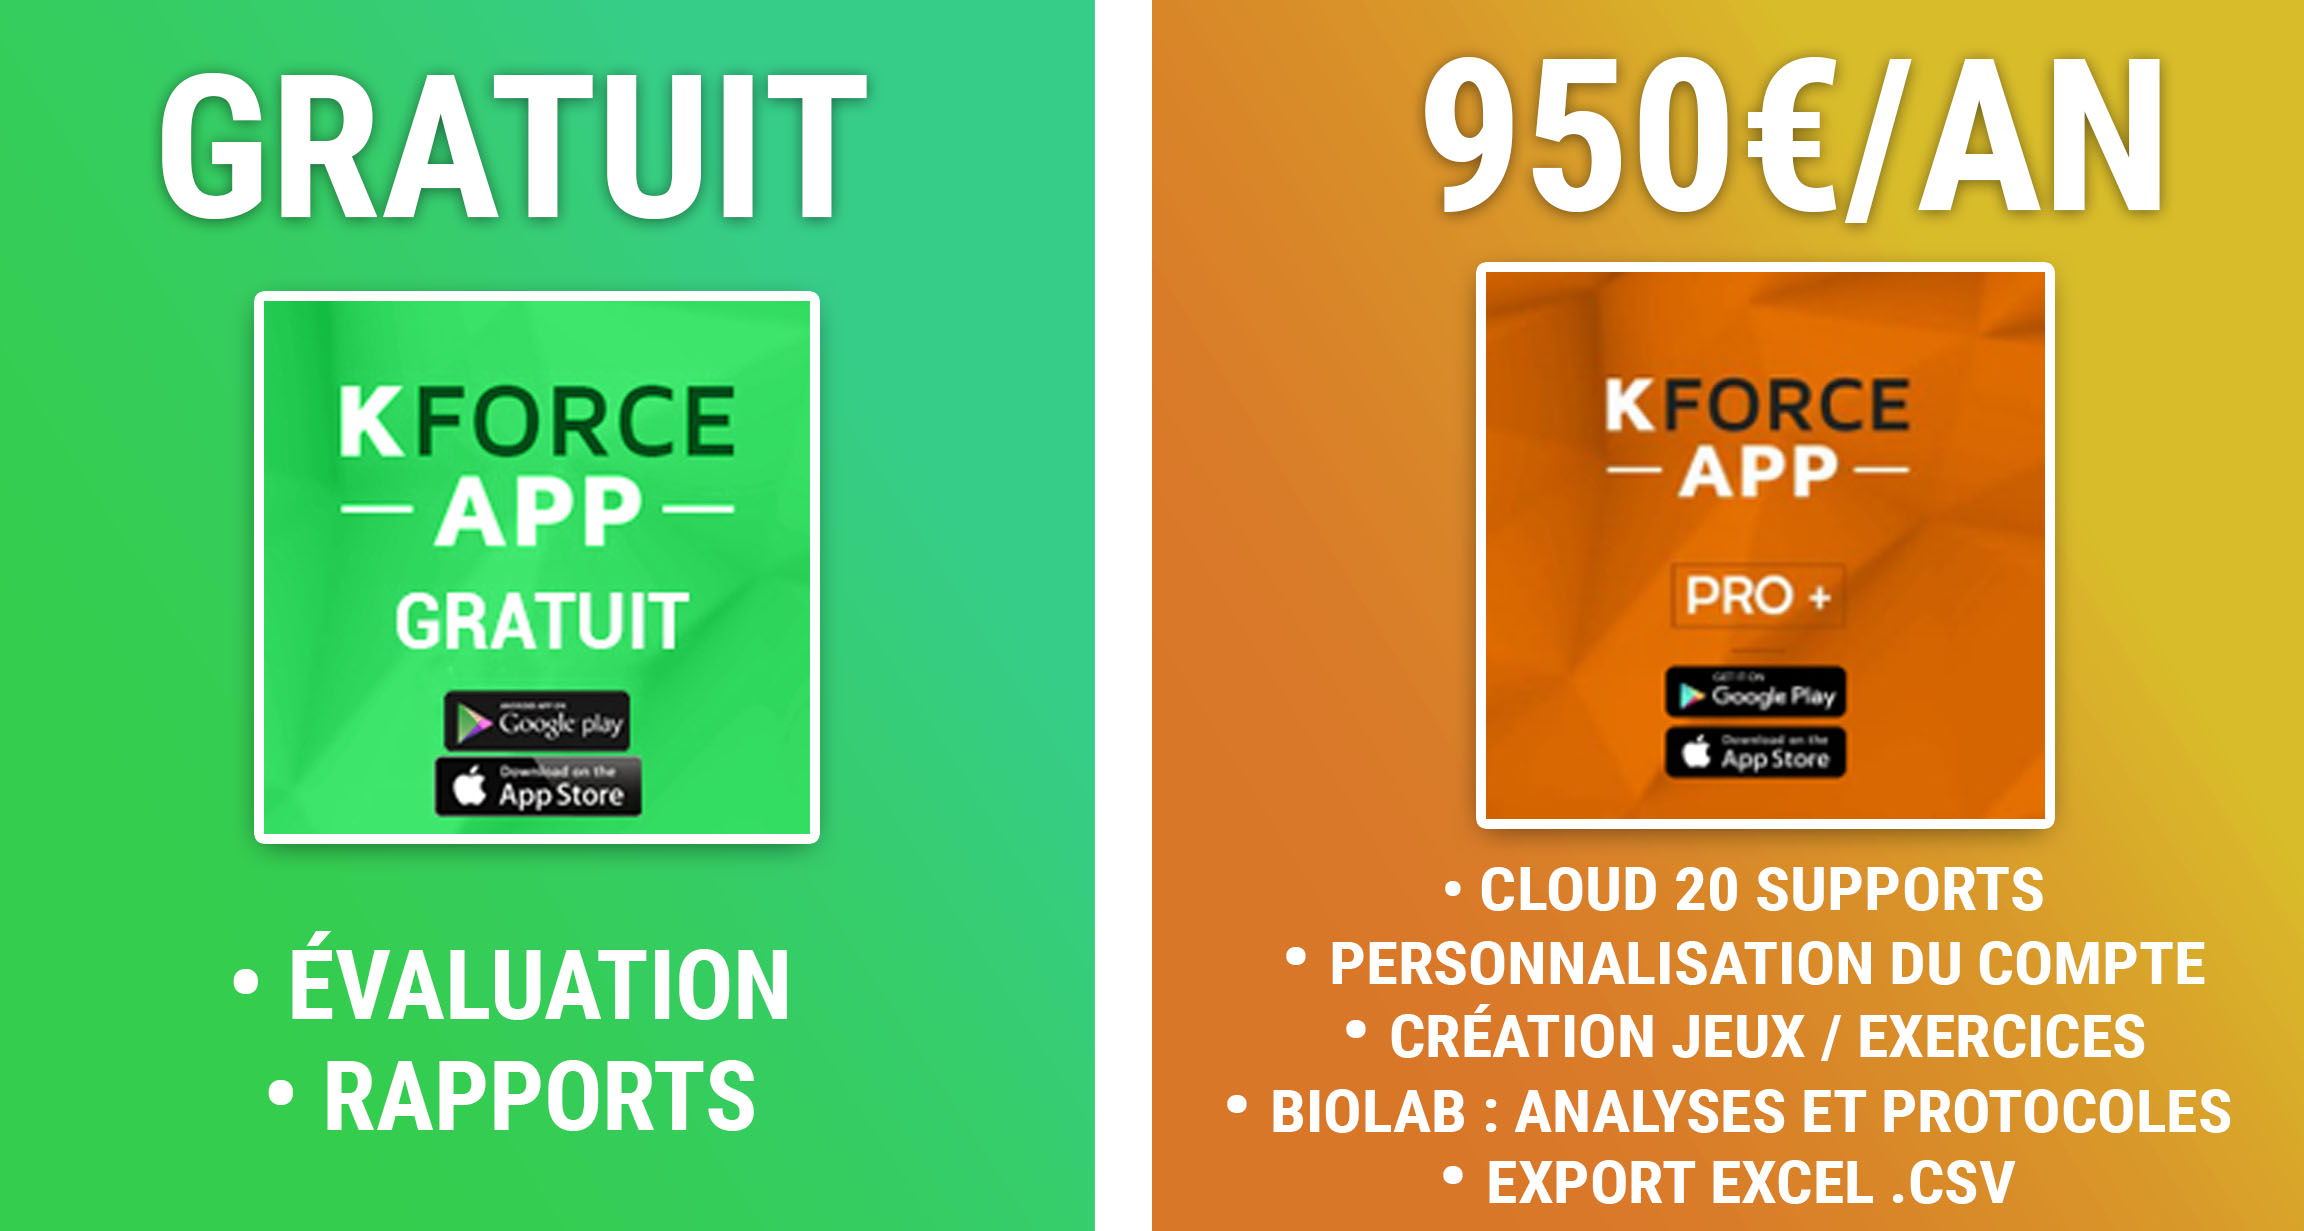 KFORCE disponible sur Google Play / App Store